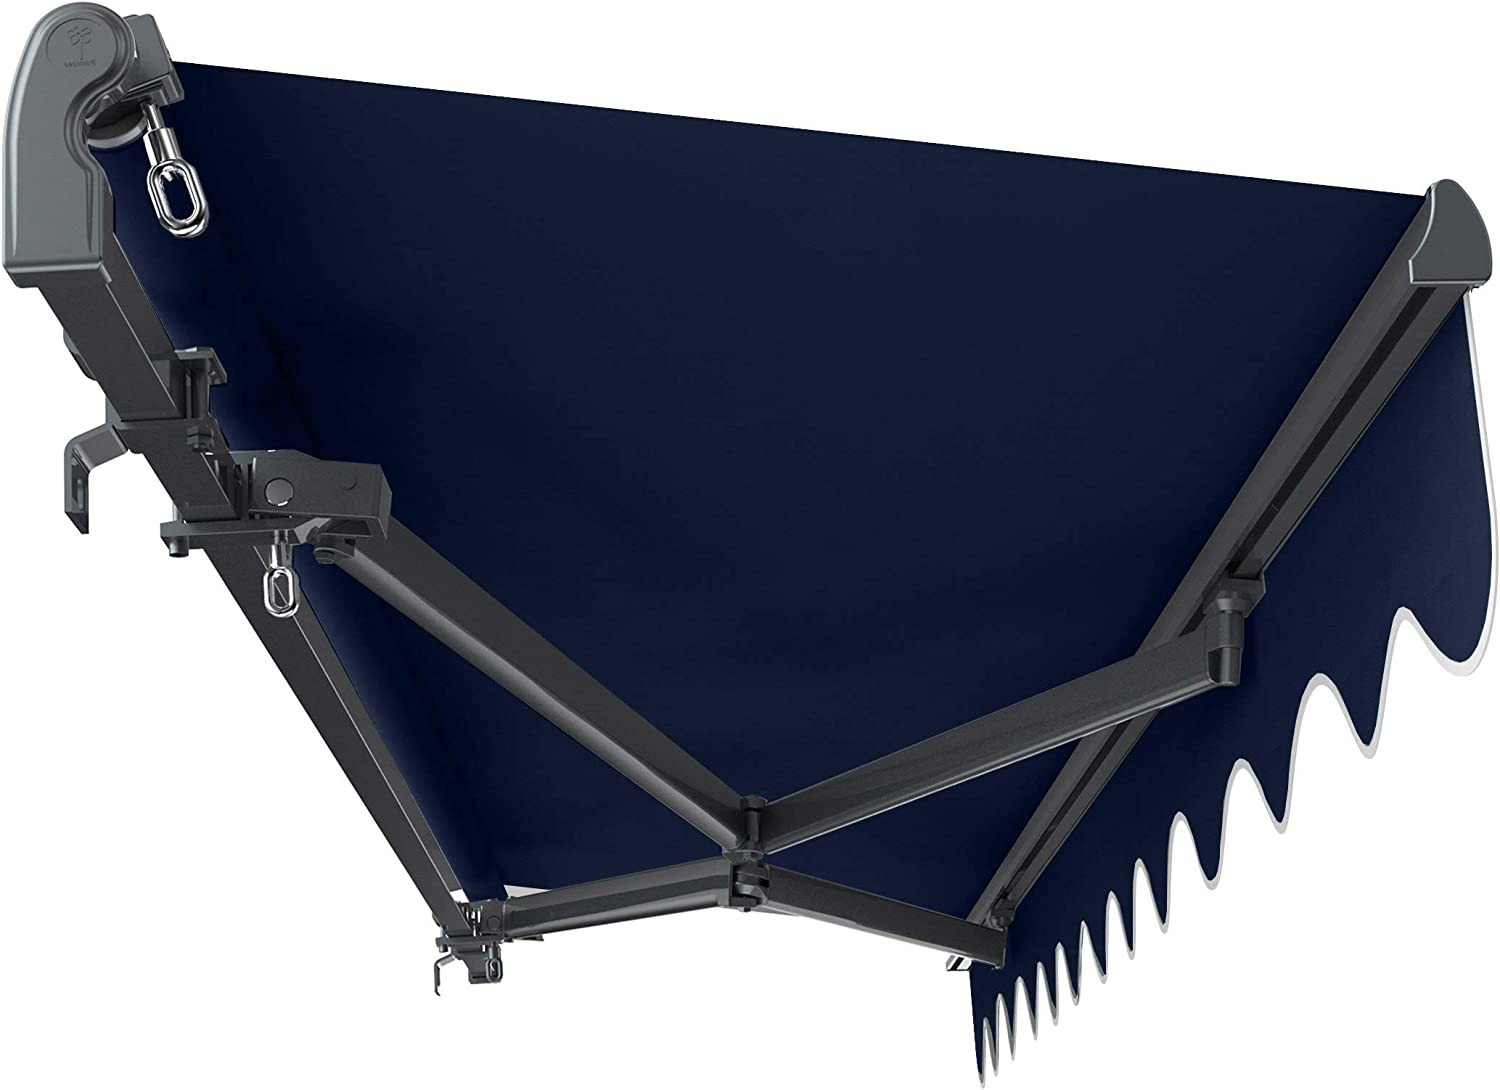 Primrose 3m x 2.5m Standard Manual Charcoal Cassette Patio Awning Complete with Fixings and Winder Handle Dark Blue